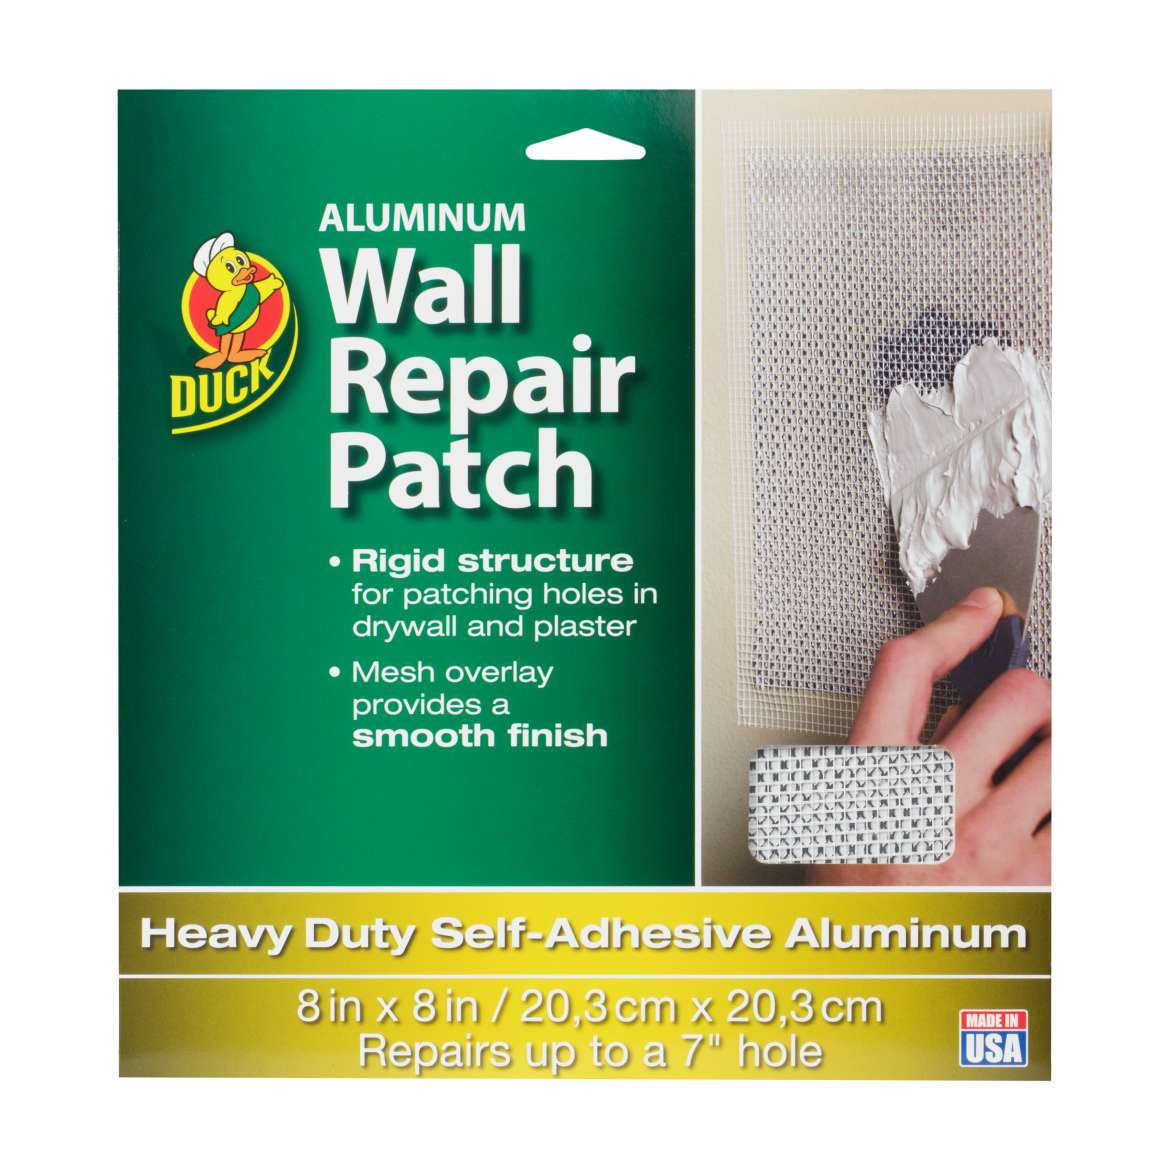 Aluminum Wall Repair Patch Image